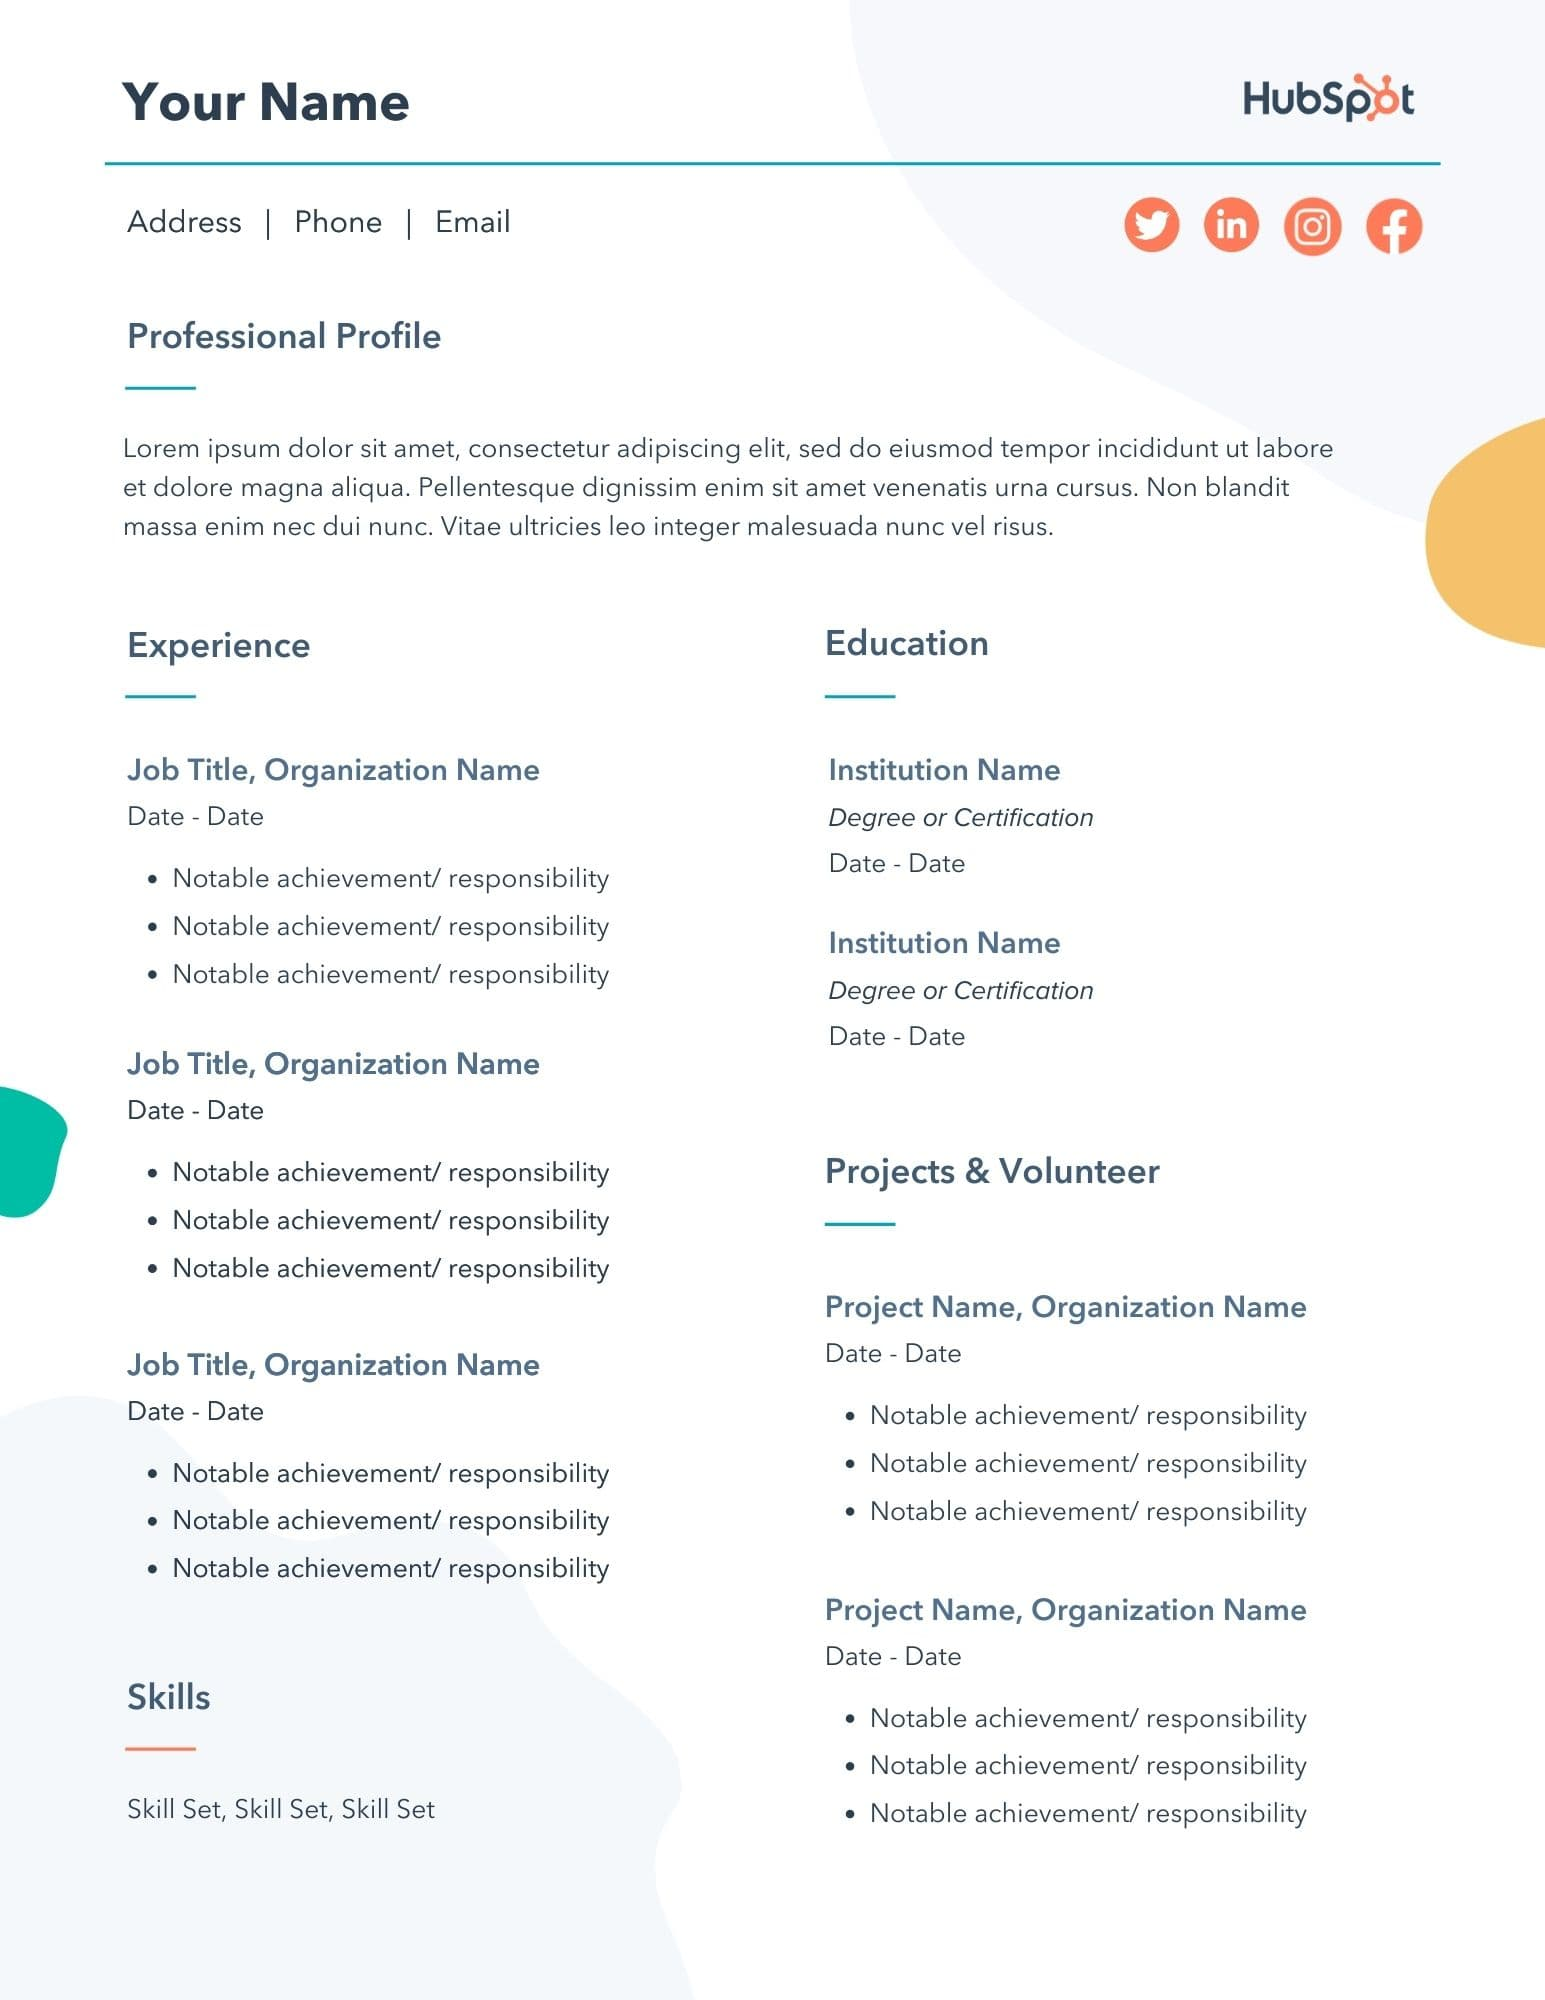 free resume templates for microsoft word to make your own formats template shrm teacher Resume Microsoft Resume Formats Templates